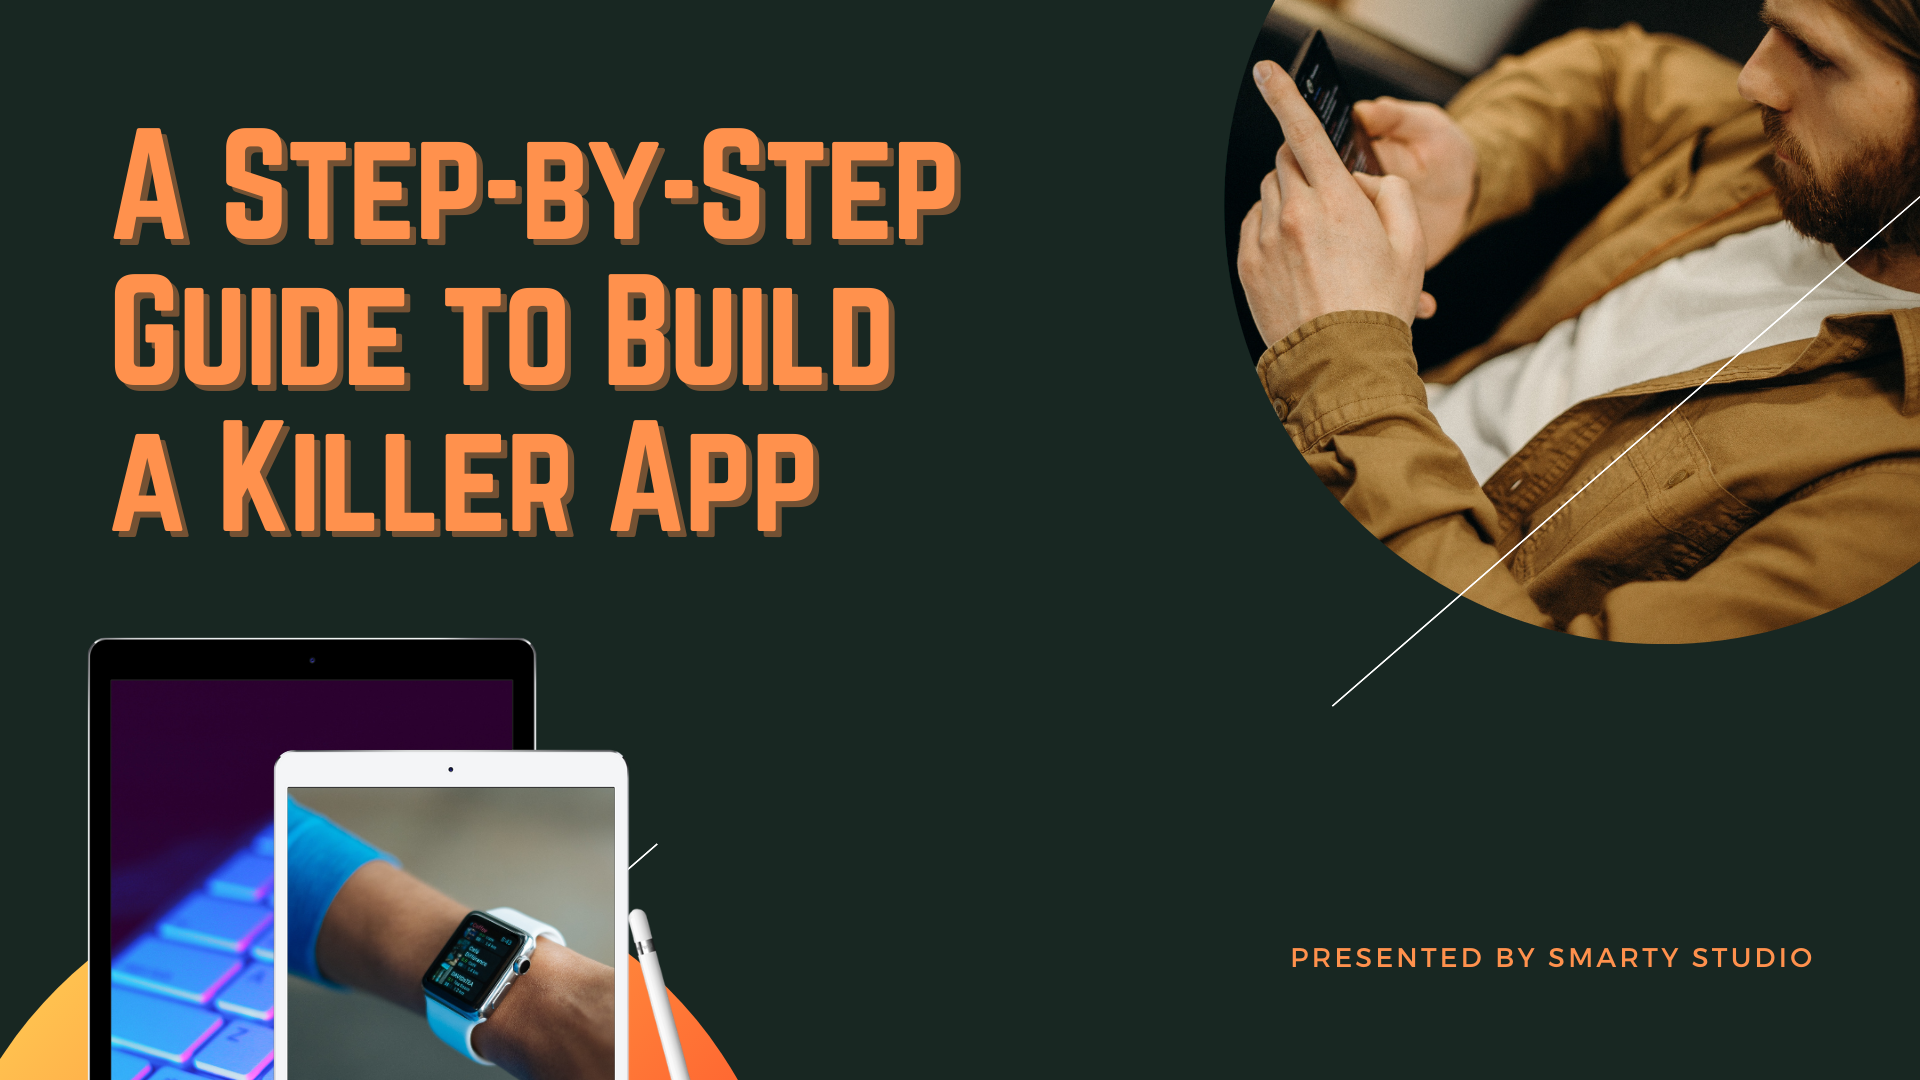 A Step-by-Step Guide to Build a Killer App